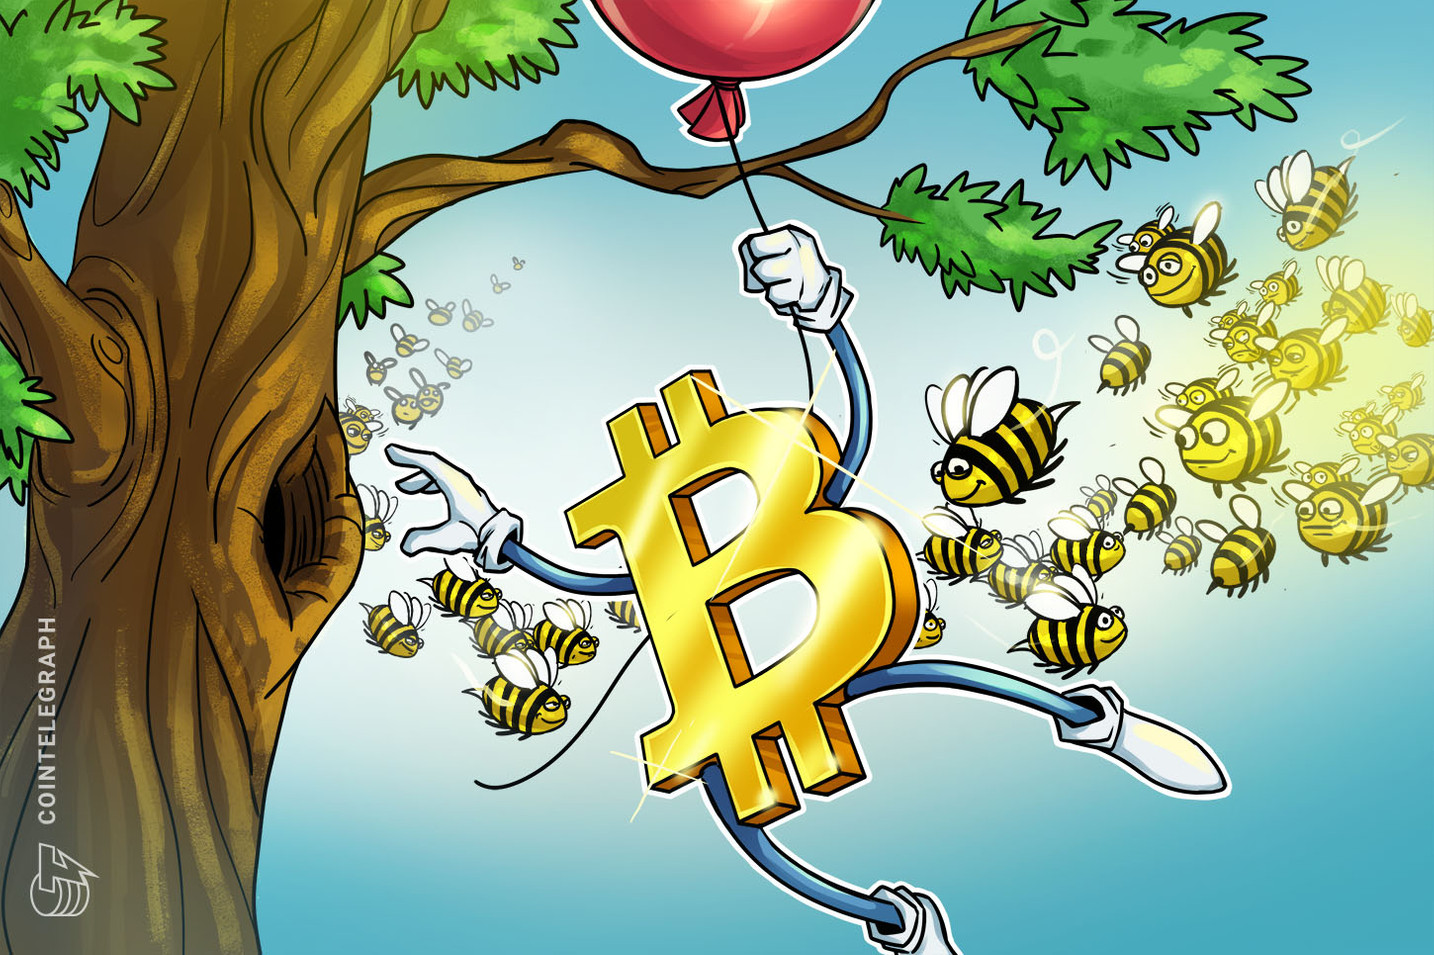 Bitcoin Price Stalls at $9,300, Altcoins Rally to New Multi-Year Highs